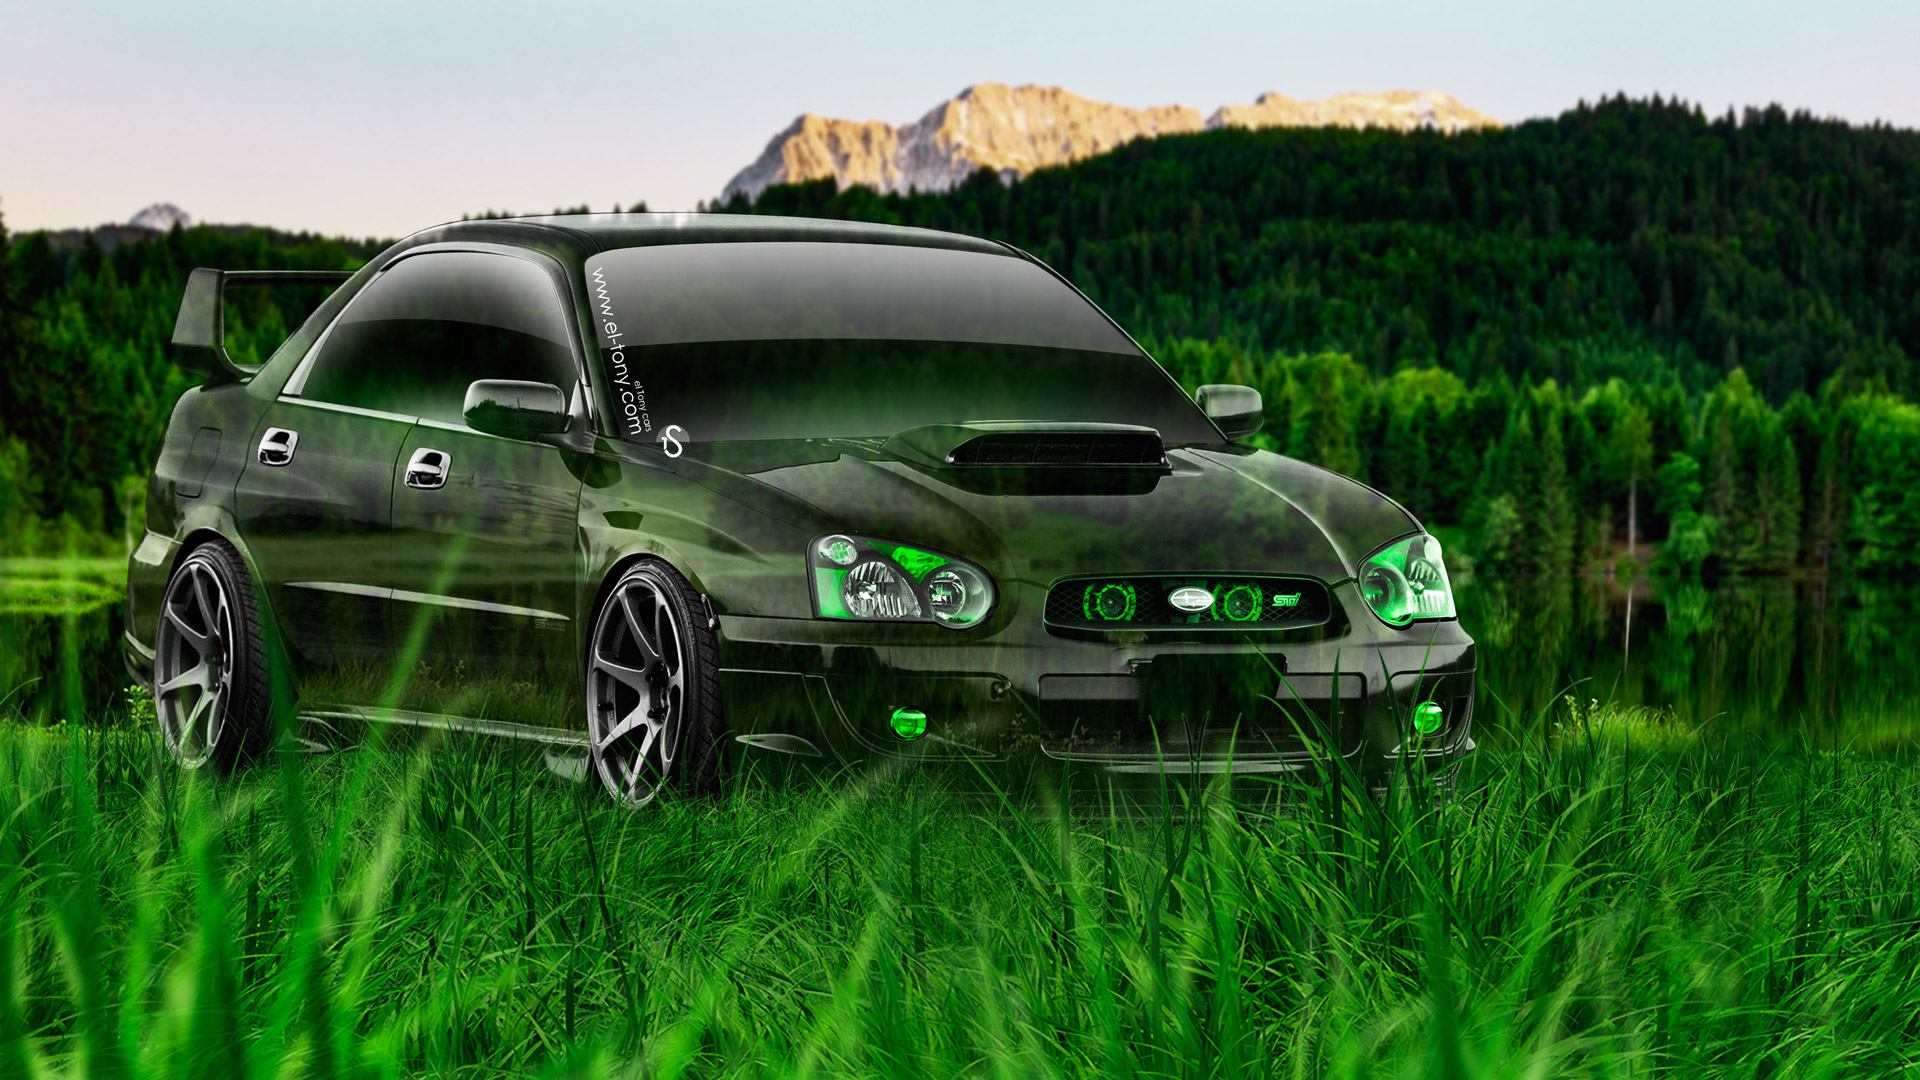 Subaru Impreza WRX STI JDM Crystal Nature Car 2014 | El Tony